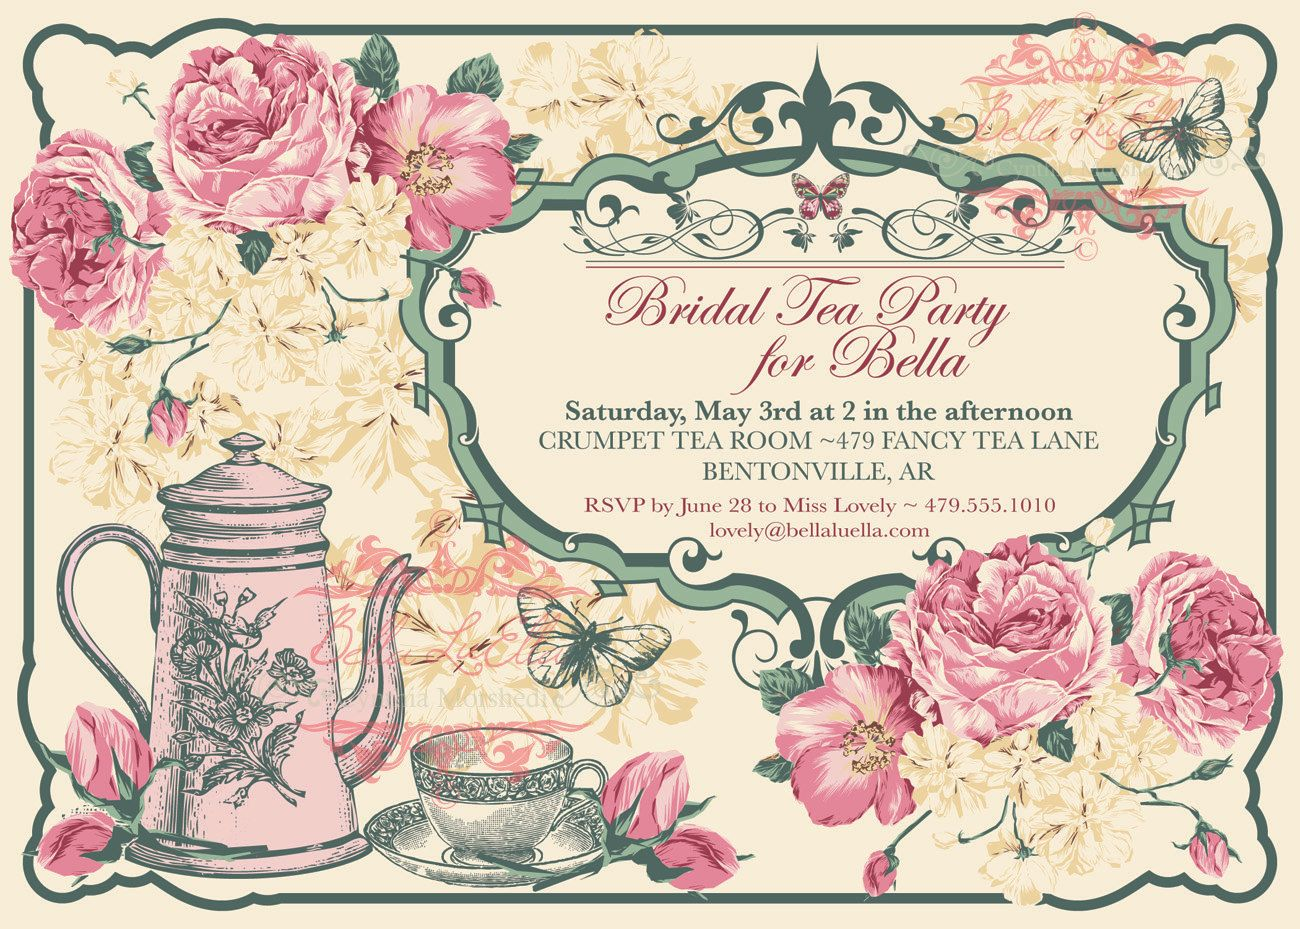 Best 20+ Bridal Tea Invitations ideas on Pinterest | Tea party ...